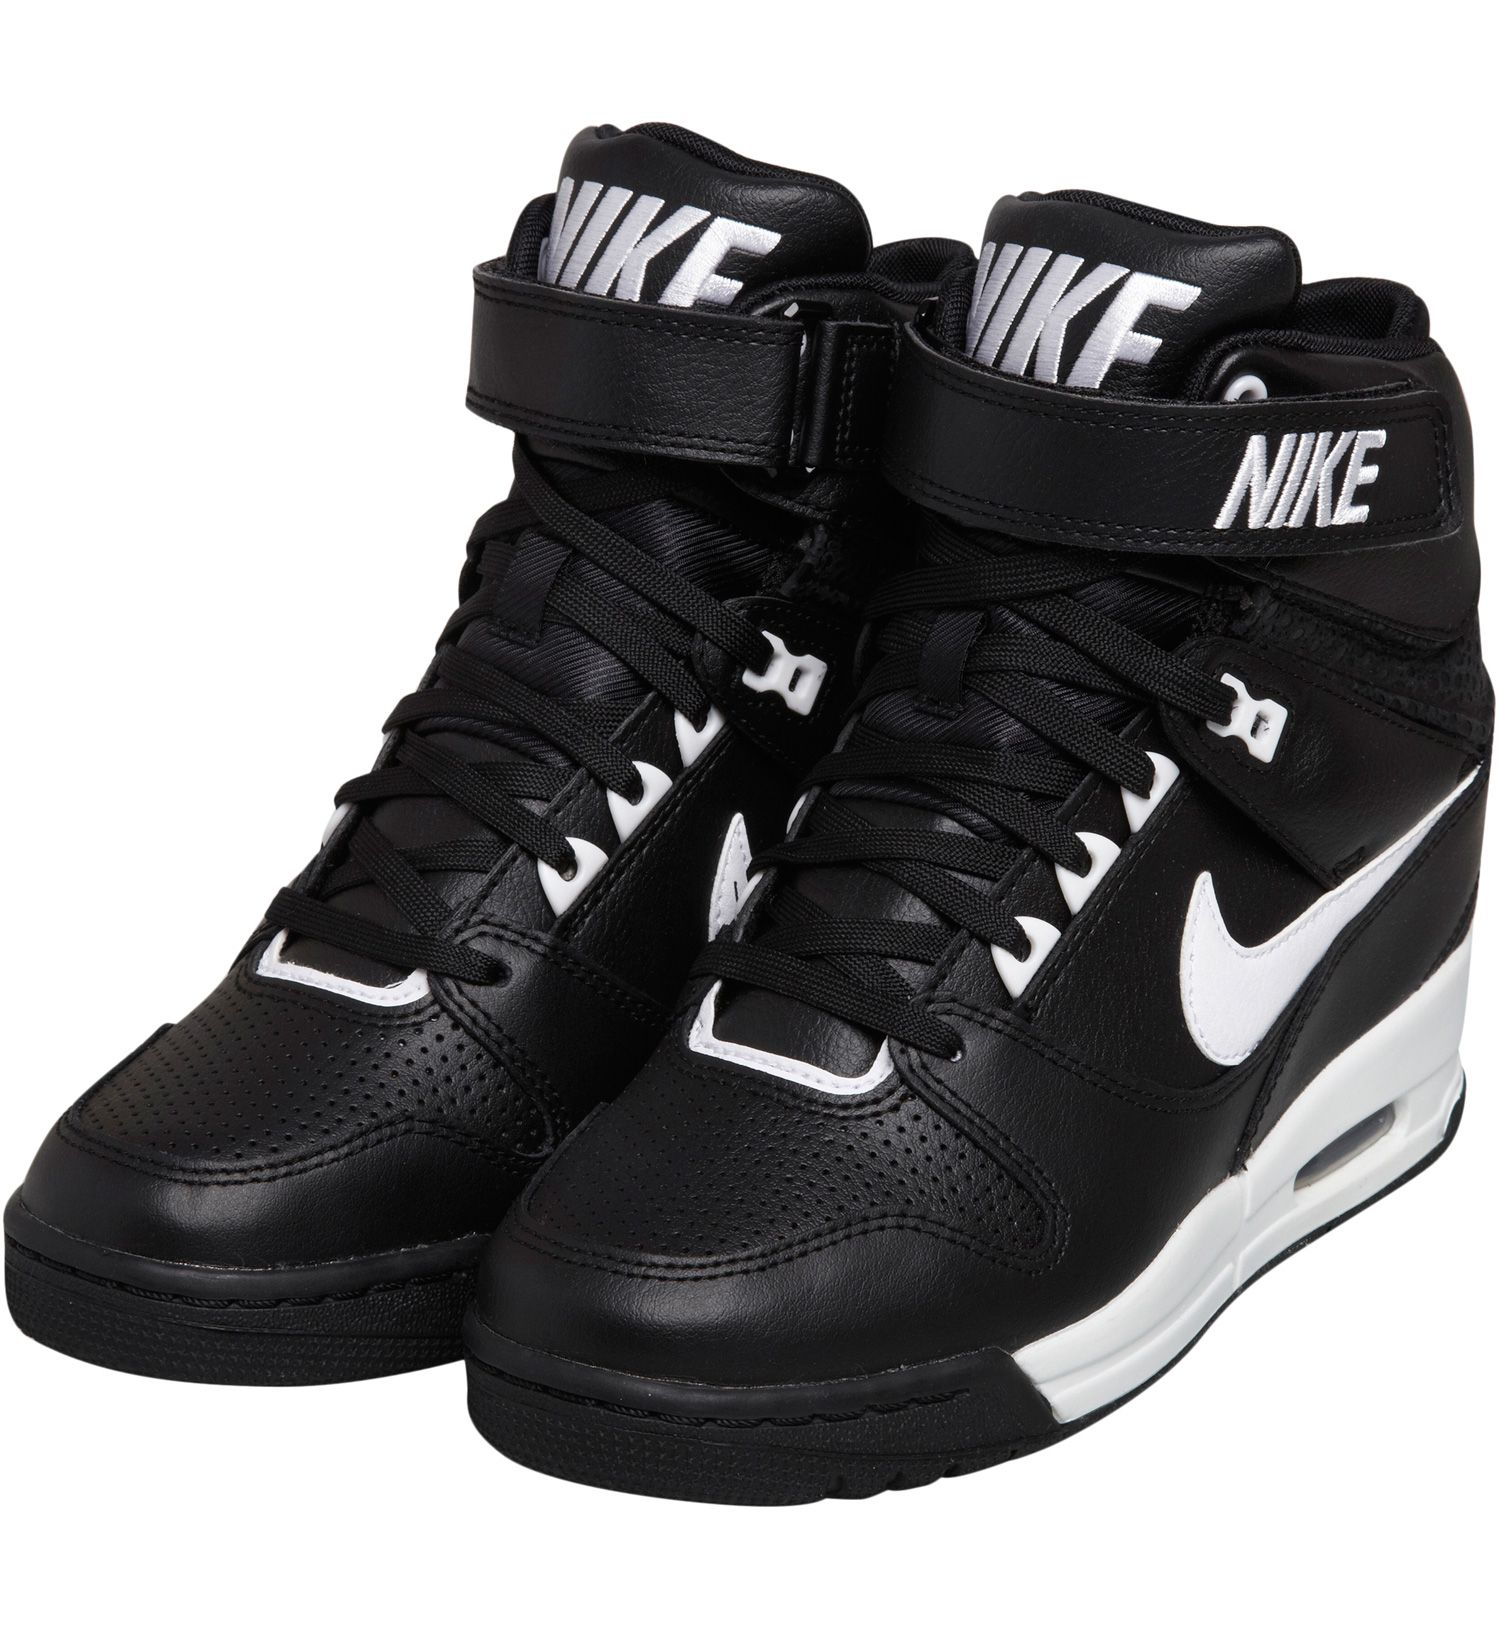 sale retailer 09fe6 21ca6 Accueil Nike Baskets Air Revolution Sky Hi Noir